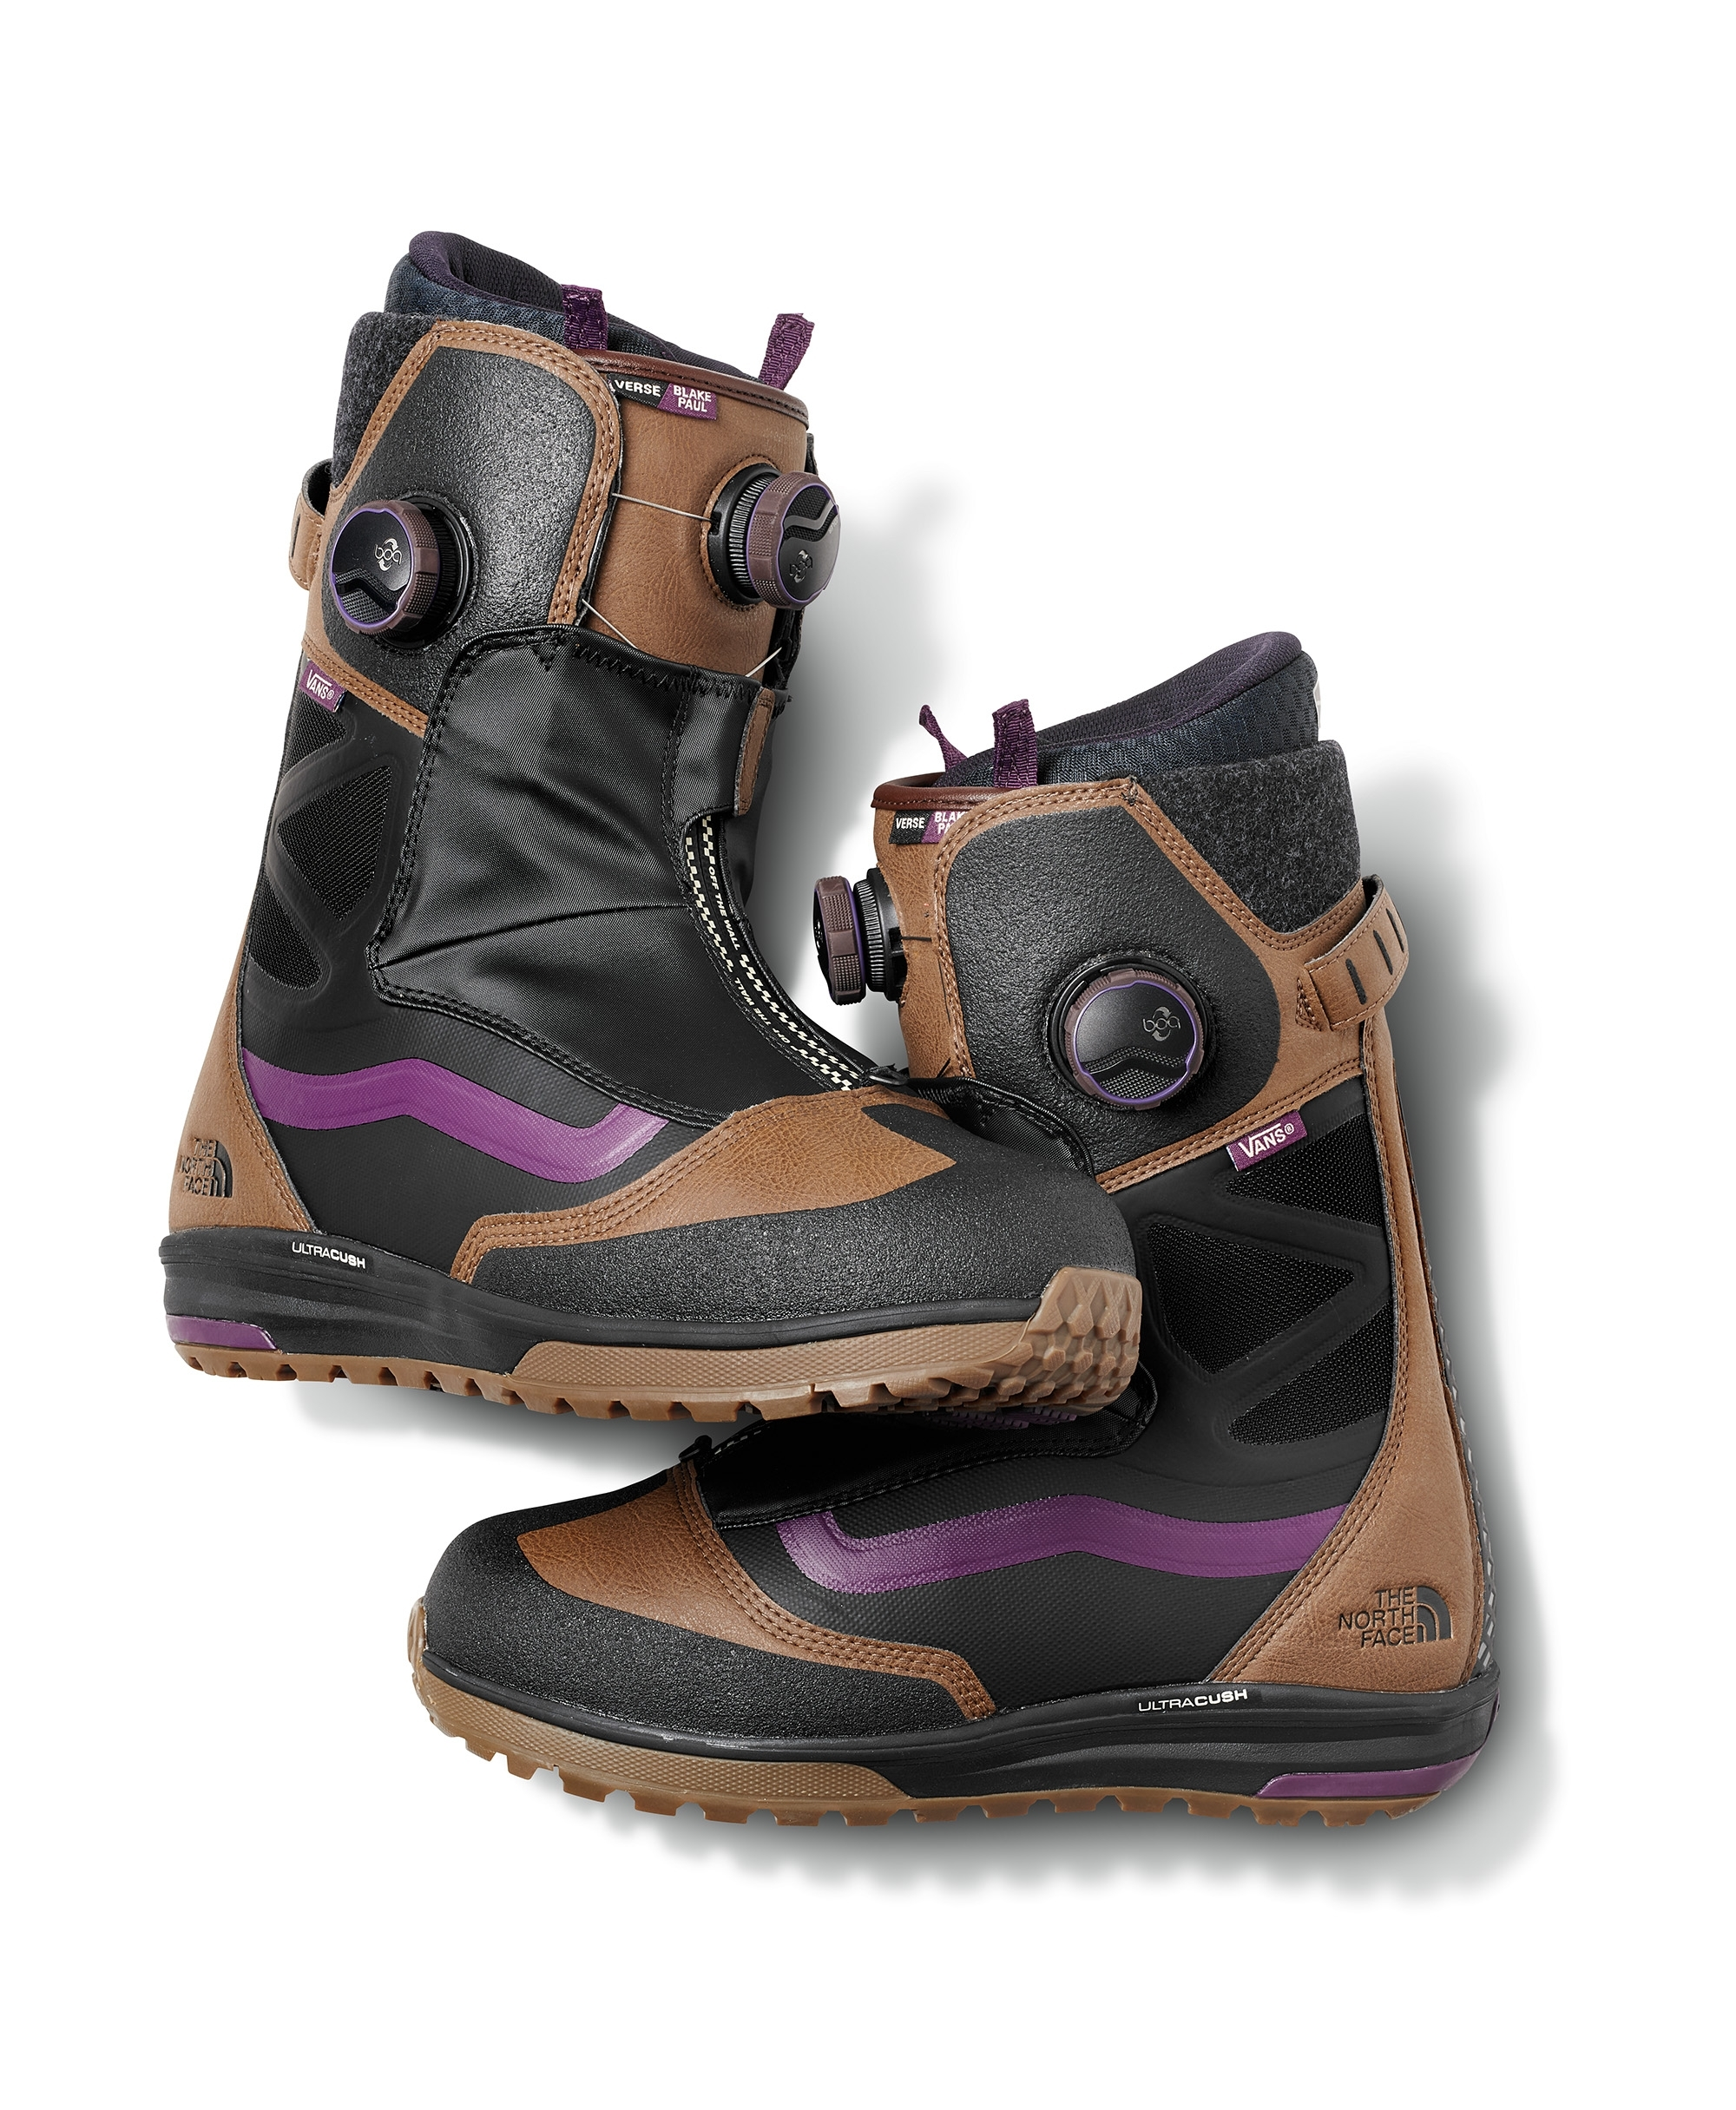 77583f059d1 ... double Boa® performance snowboard boot. Unveiled in Blake s new  signature colorway